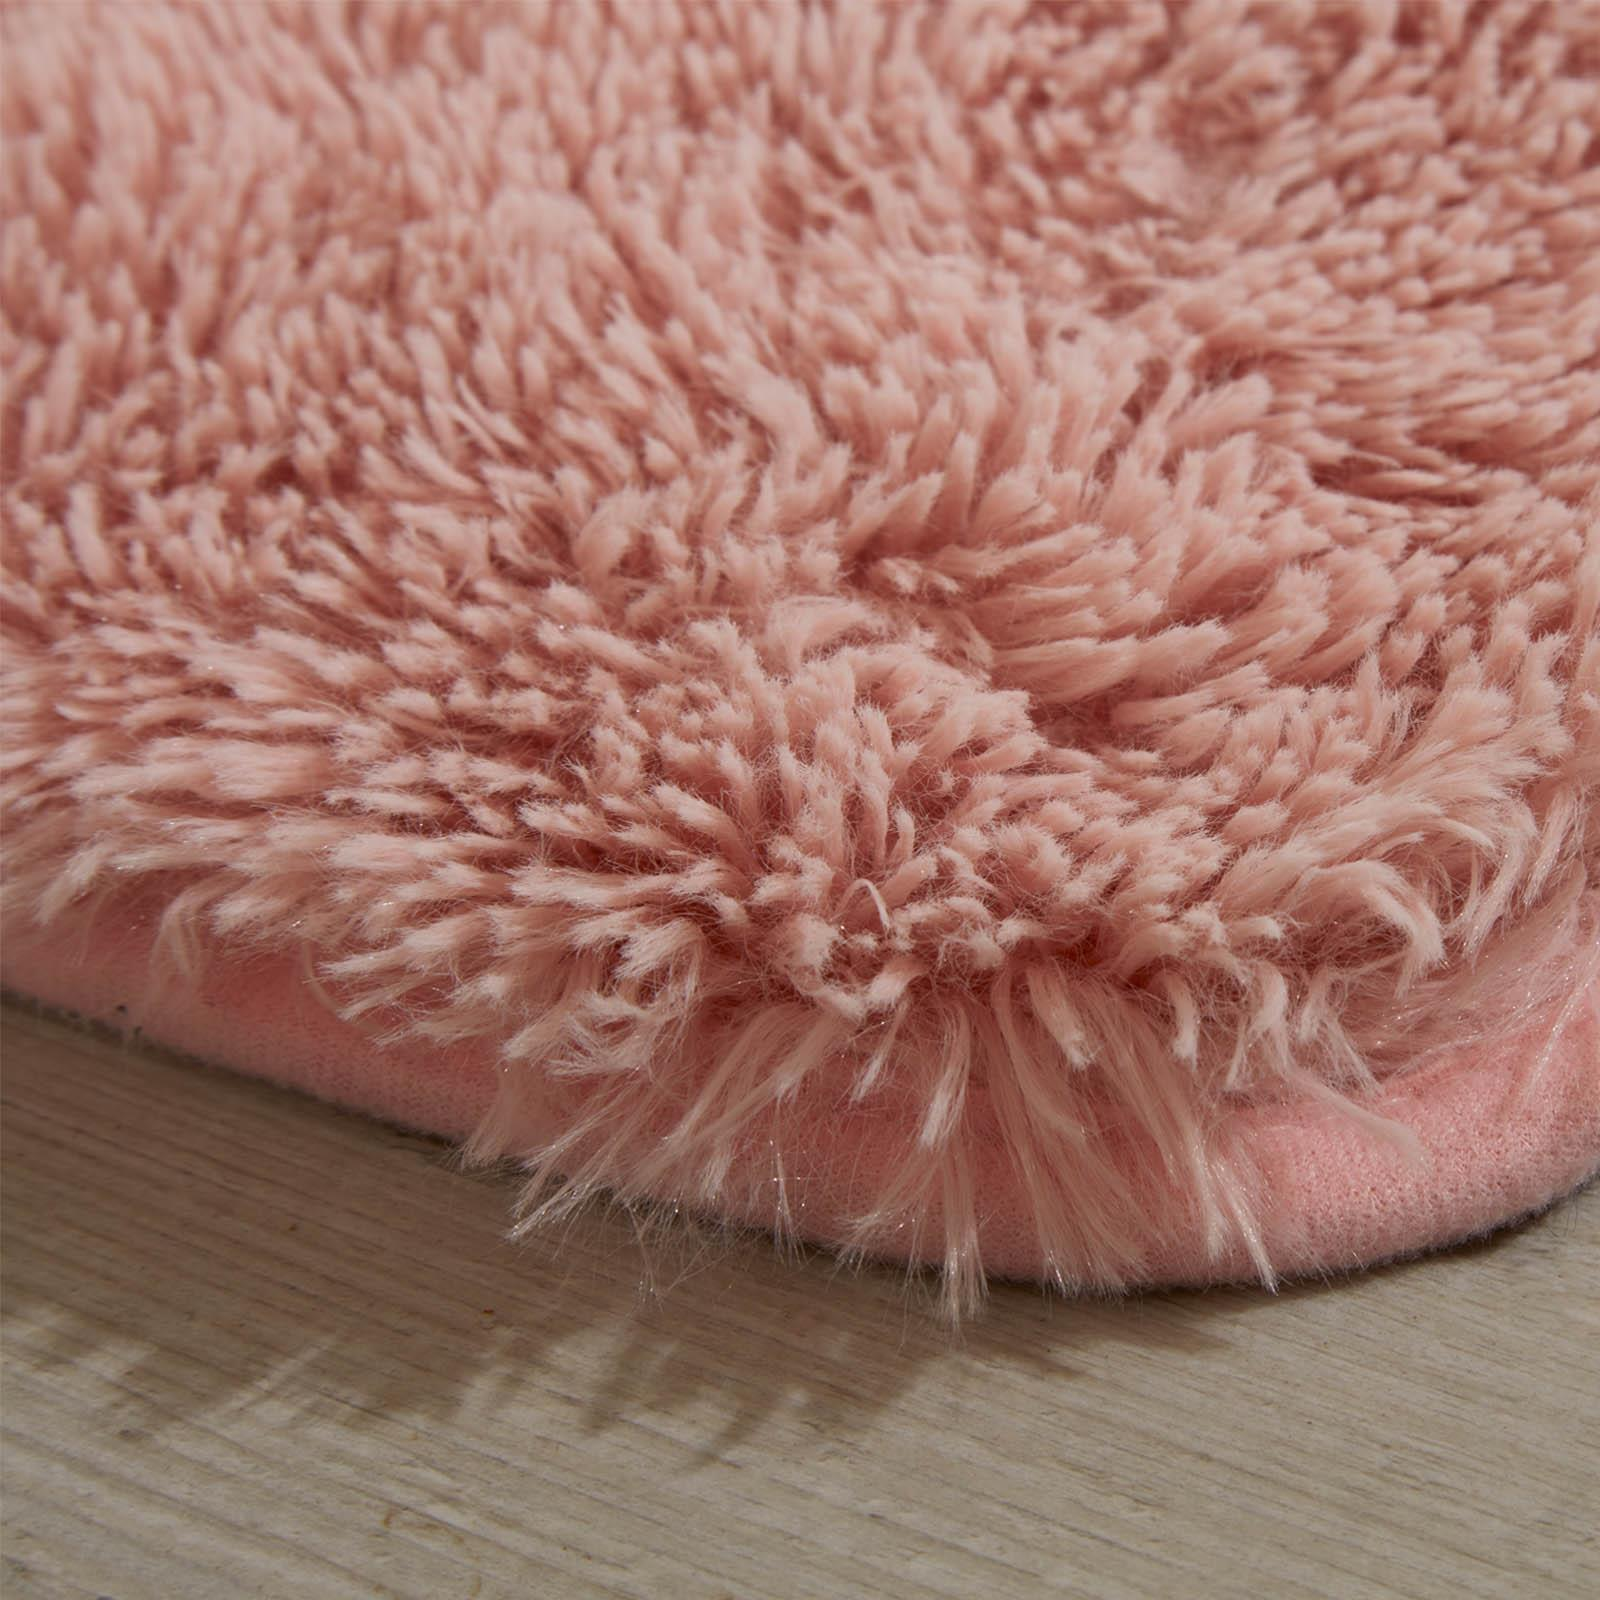 Sienna-Fluffy-Rug-Anti-Slip-Skid-Shaggy-Large-Bedroom-Non-Shed-Floor-Carpet-Mat thumbnail 3